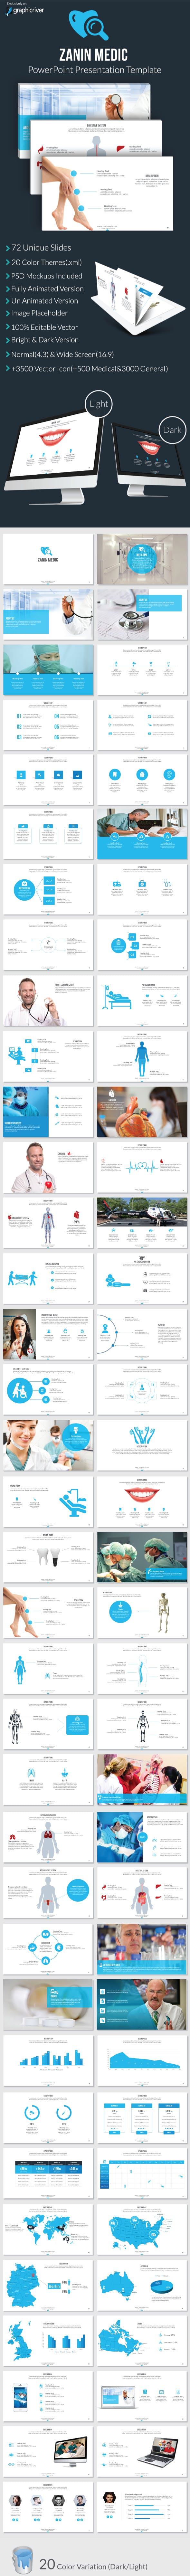 zanin medic powerpoint presentation template by mia3d graphicriver